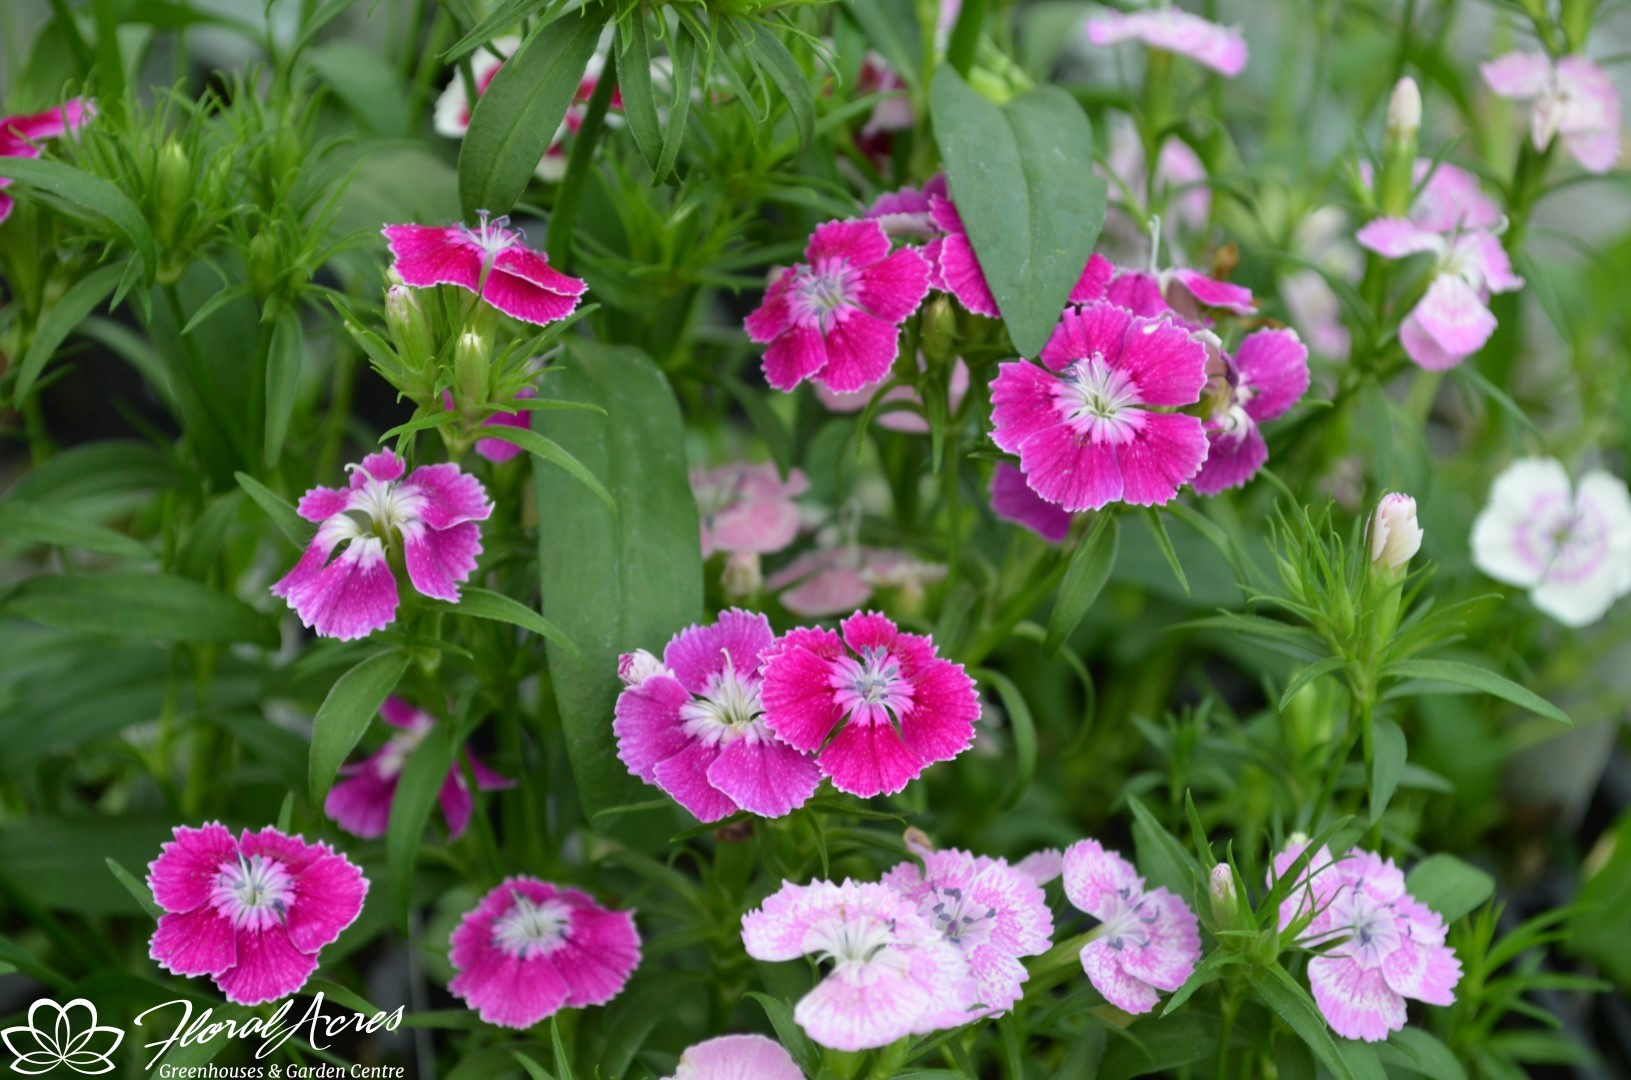 Dianthus Corona Strawberry Floral Acres